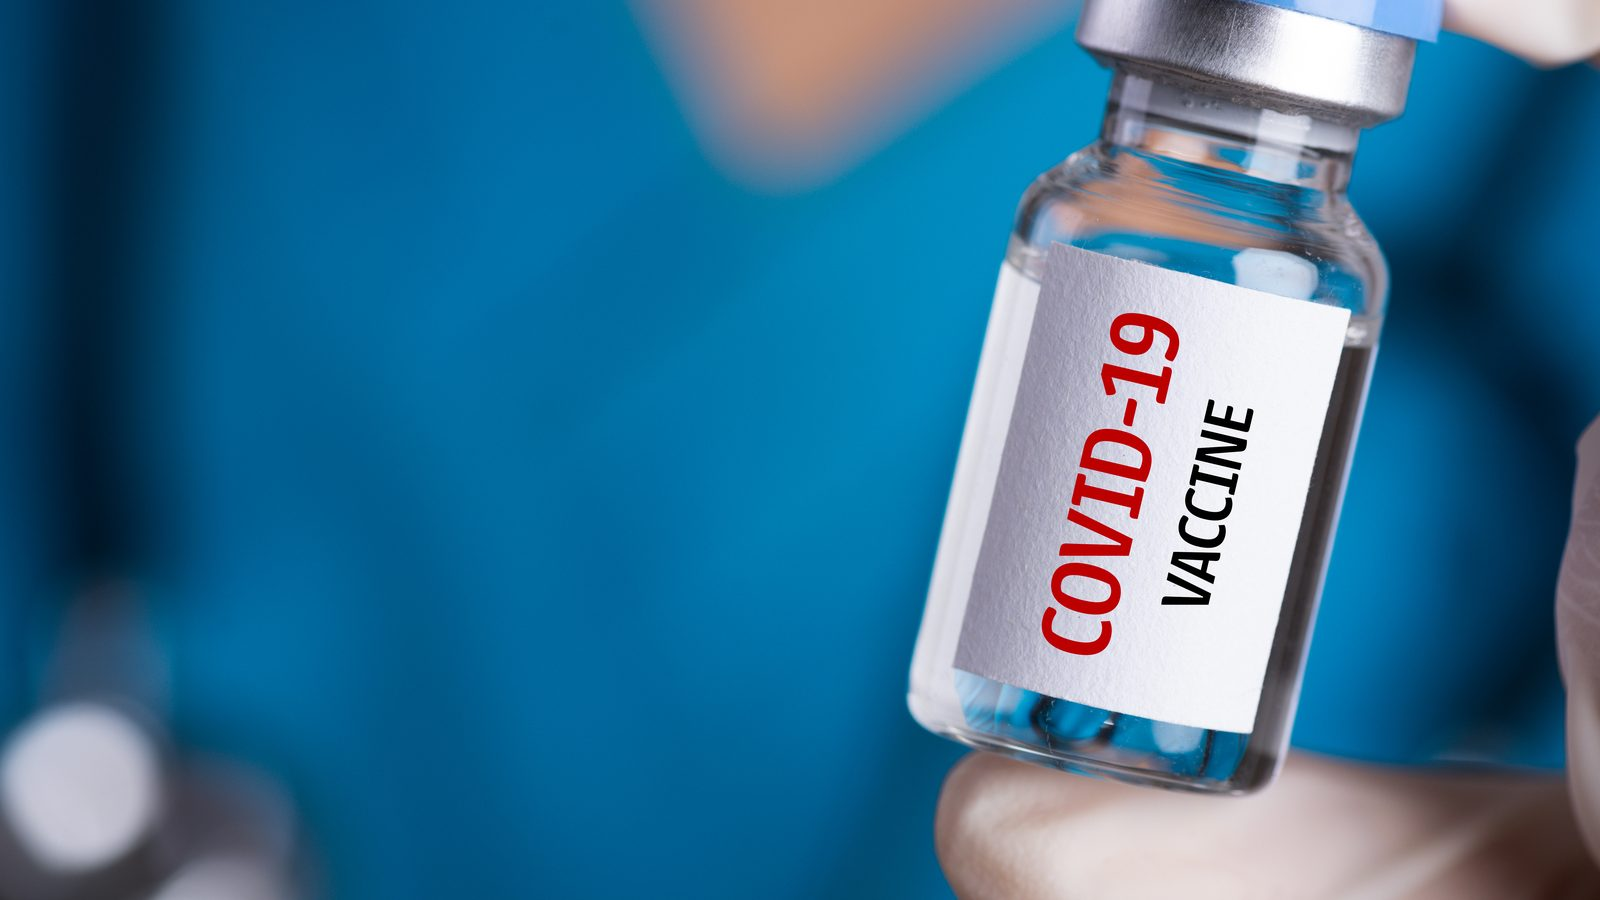 over16crore25lakhdosesofcovid19vaccinesadministeredincountry